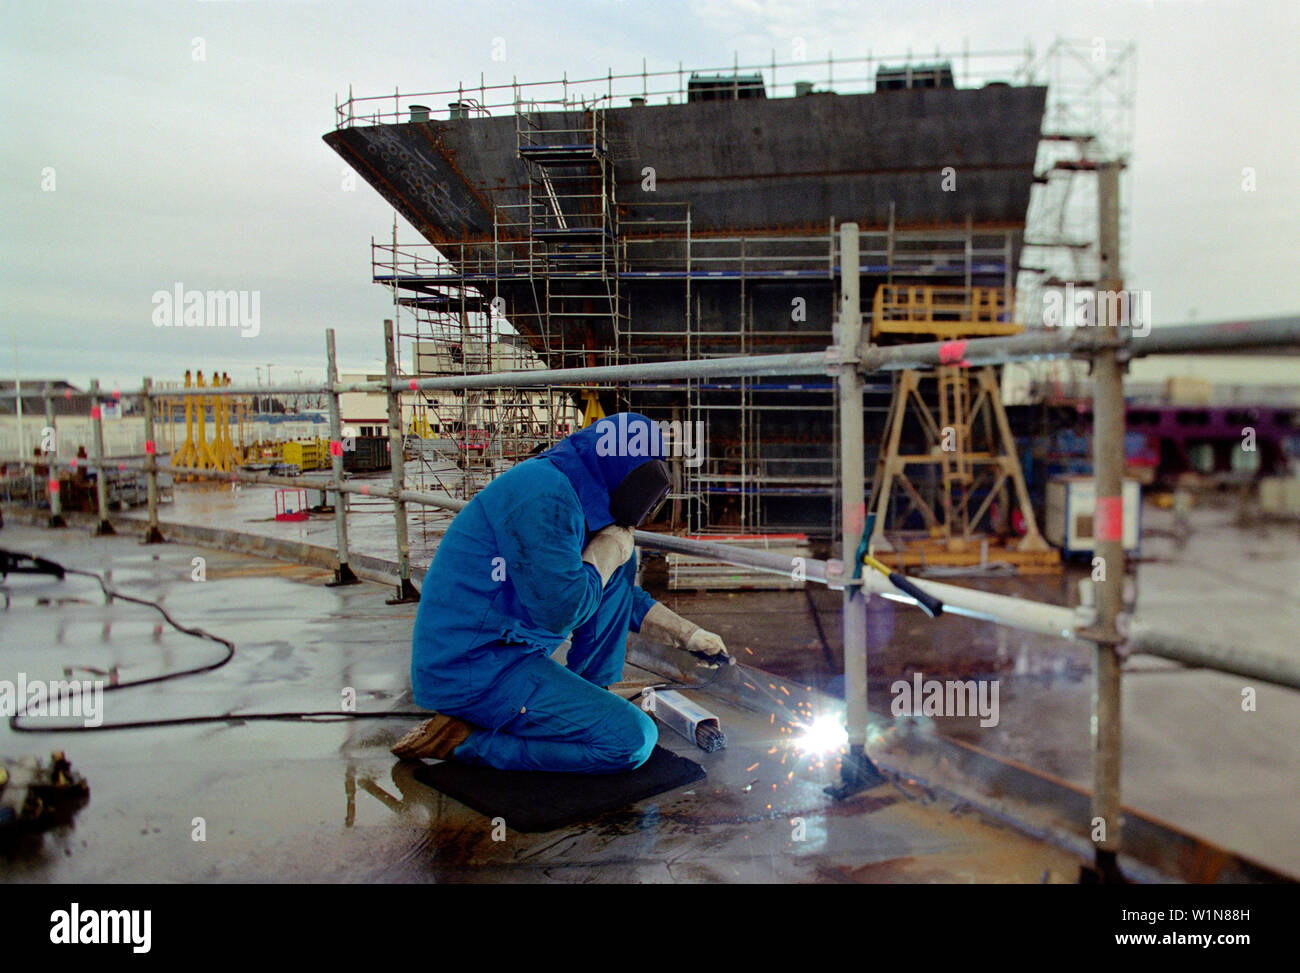 Worker welding steel plates, dry dock, Queen Mary 2, Saint-Nazaire, France - Stock Image